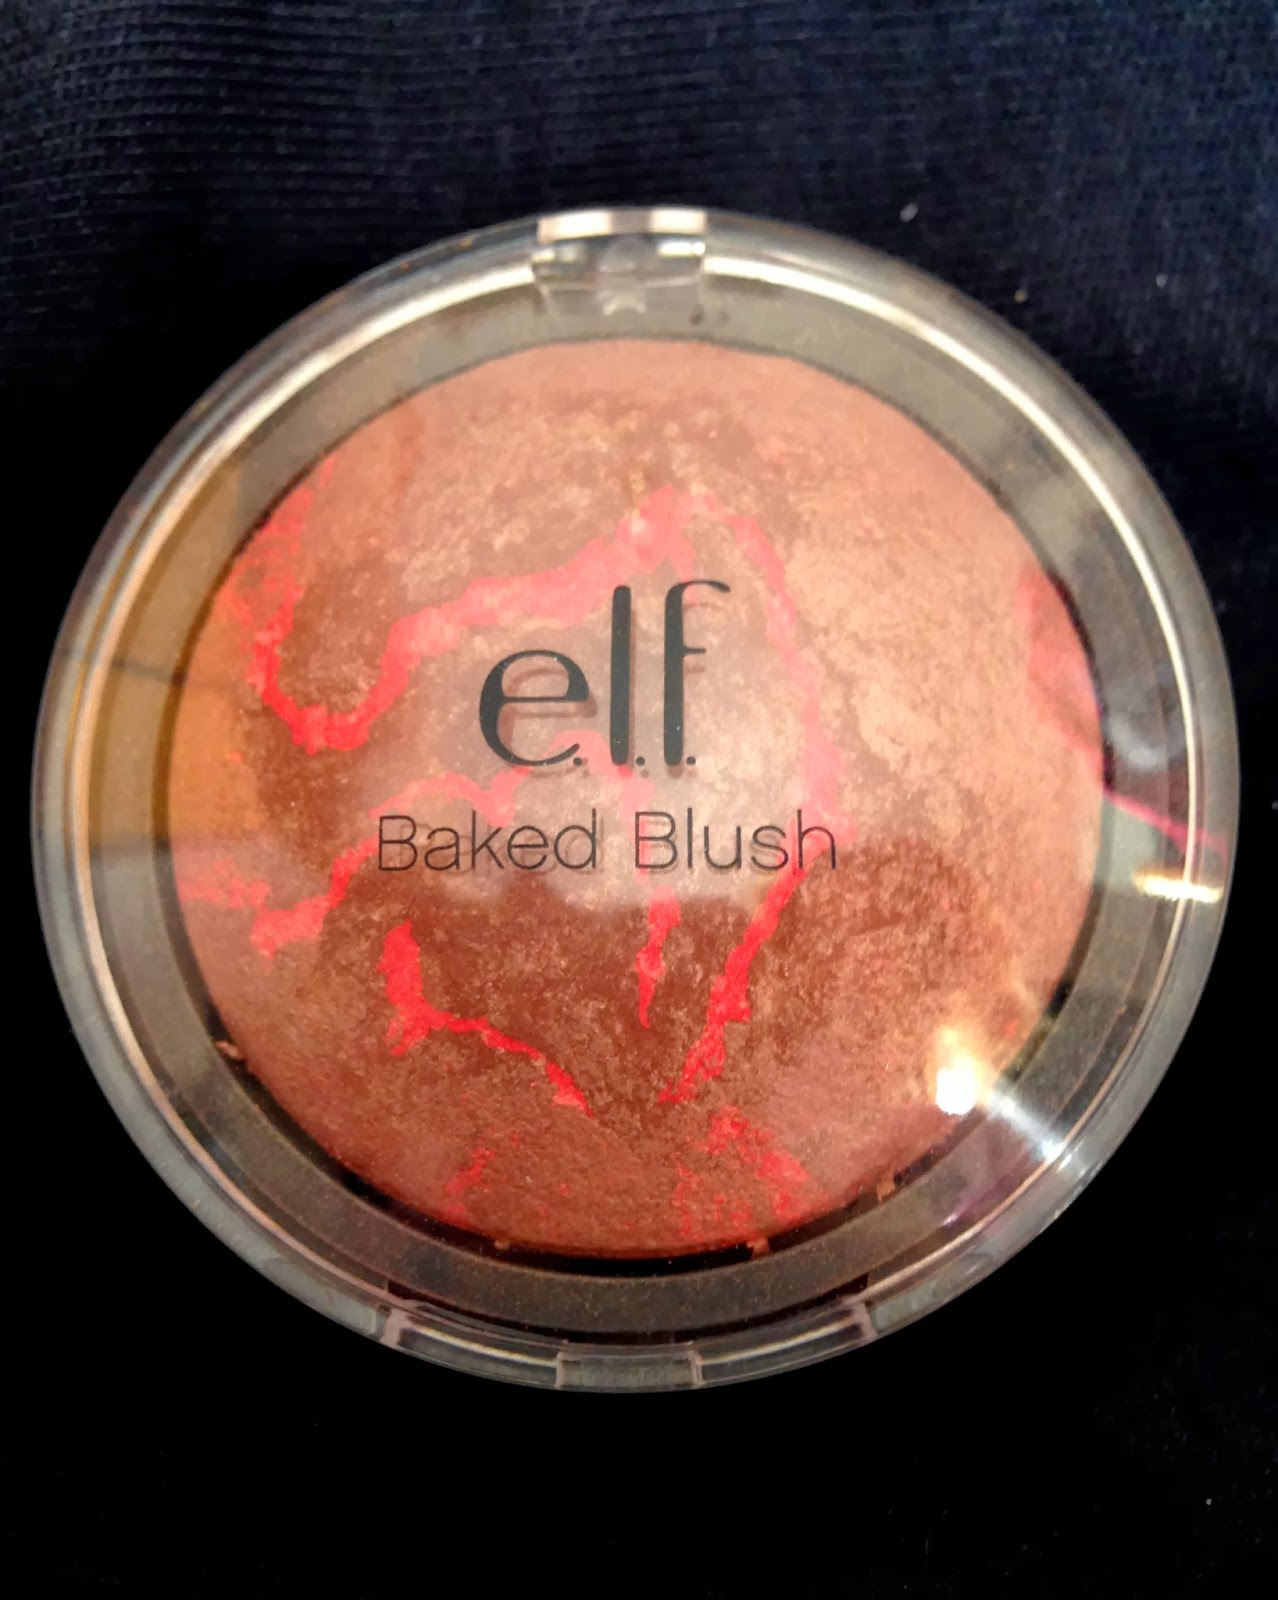 E.L.F. COSMETICS BAKED BLUSH IN 'RICH ROSE'